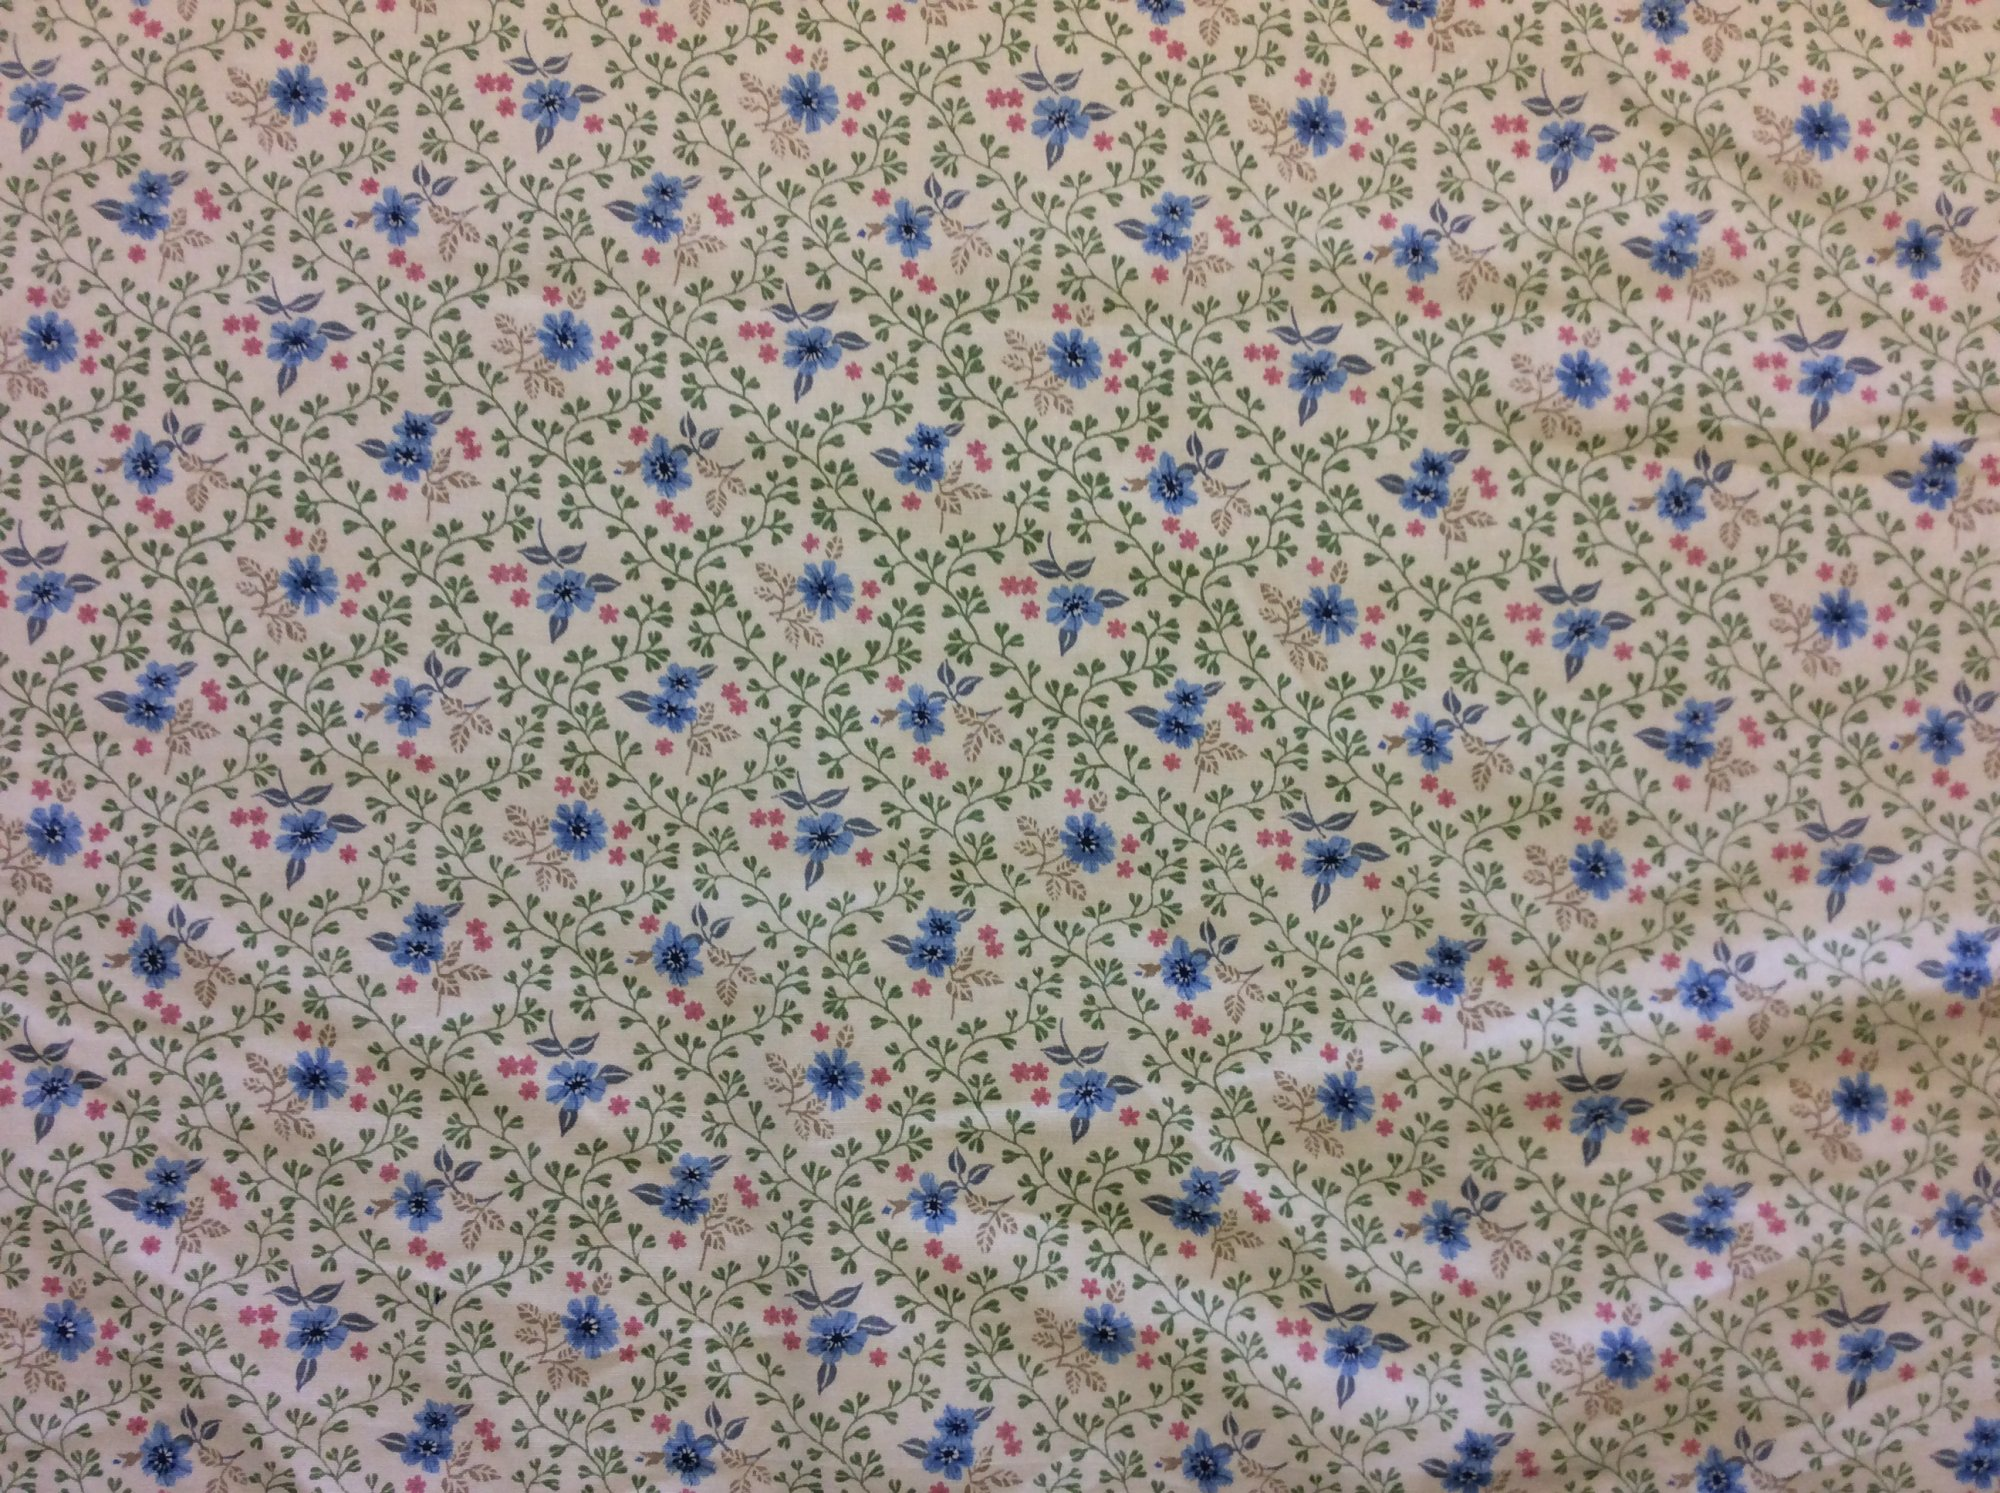 Vintage Cotton Light Weight Canvas Floral Calico Pastel Shabby Chic Country Ivy Flower Apparel Home Decor Fabric VTGL191A